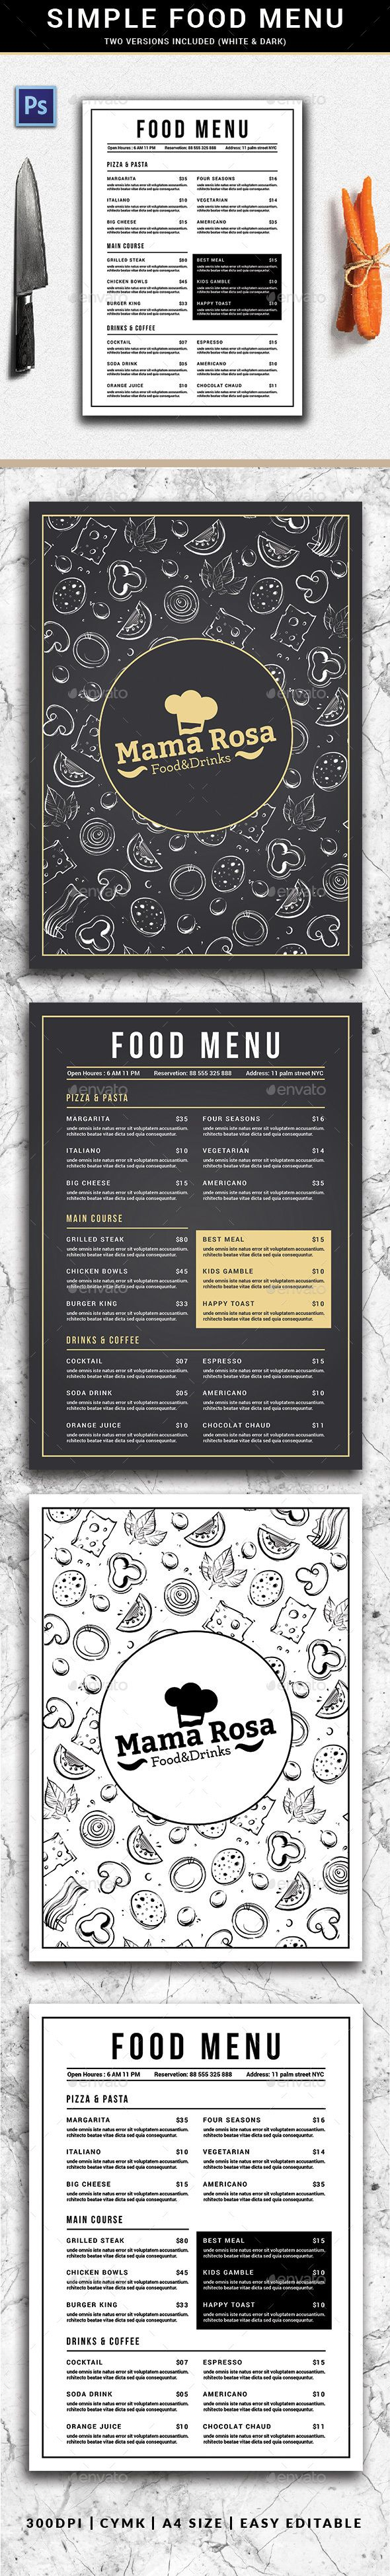 Simple Food Menu Simple Restaurant Menu, can be used for your cafe or restaurant menu. Very easy to edit the text and the image.      Simple Food Menu features     297×210mm A4 + Bleed area     851×315 pixel for Facebook Cover     Well layered and named flyer     CMYK     Print read